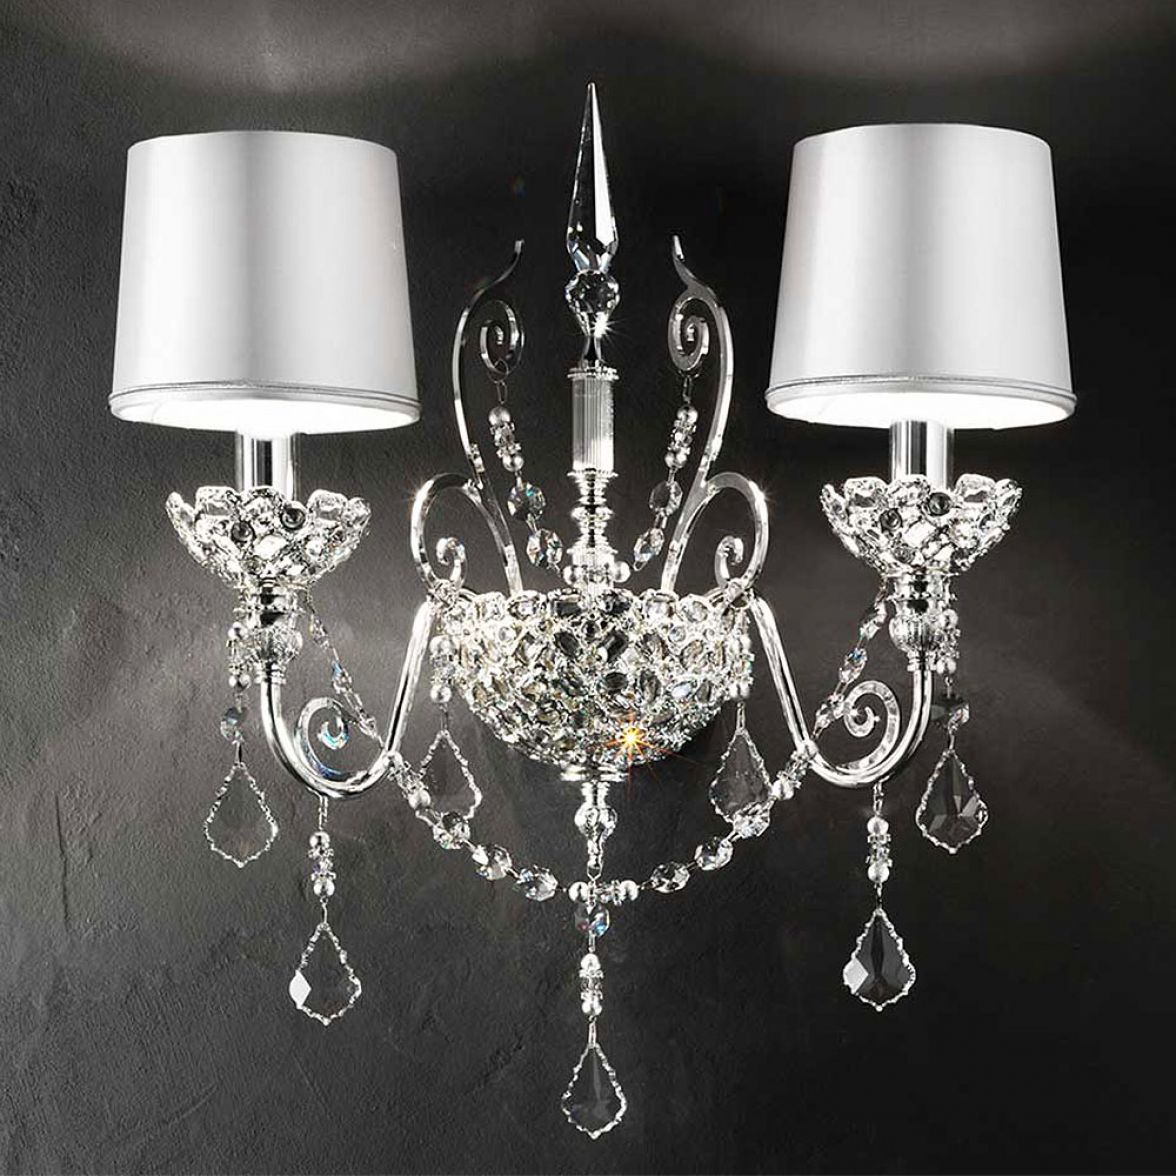 Imperial sconce